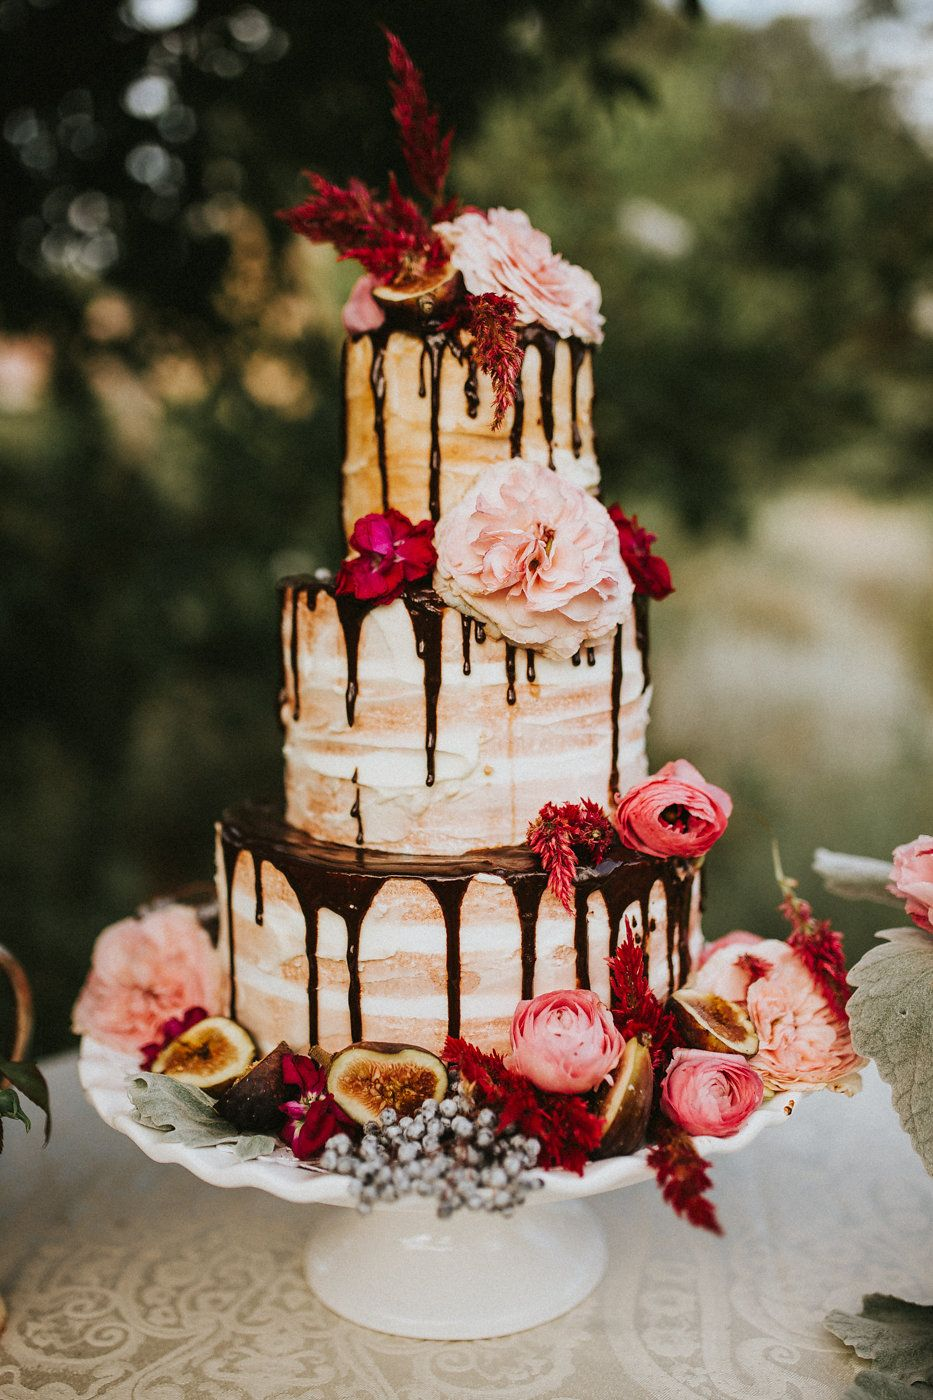 Forget The Cake What If Marie Antoinette Were A Modern Day Bride